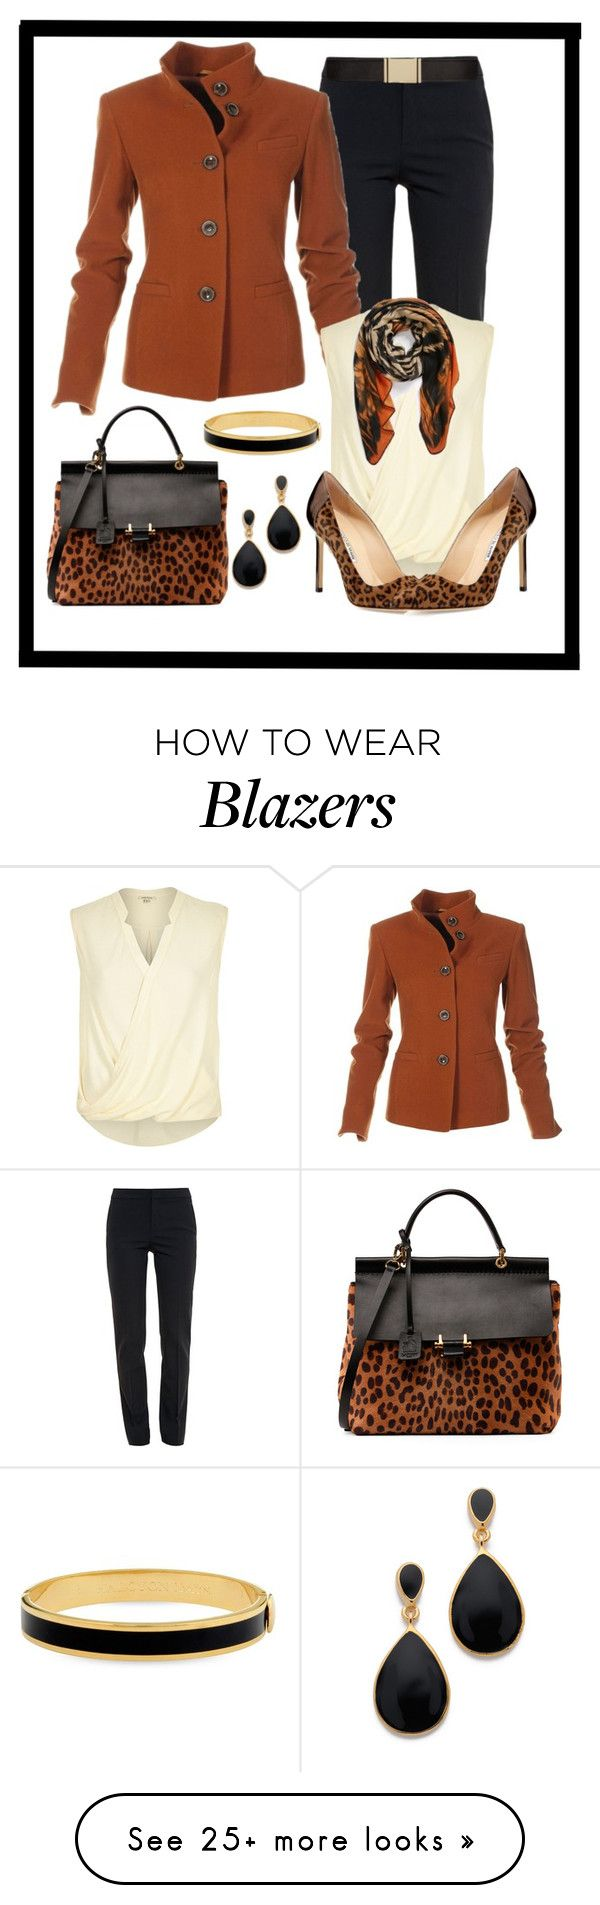 """""""Untitled #799"""" by gallant81 on Polyvore featuring Chloé, River Island, Lanvin, Halcyon Days, Kenneth Jay Lane and Balmain"""